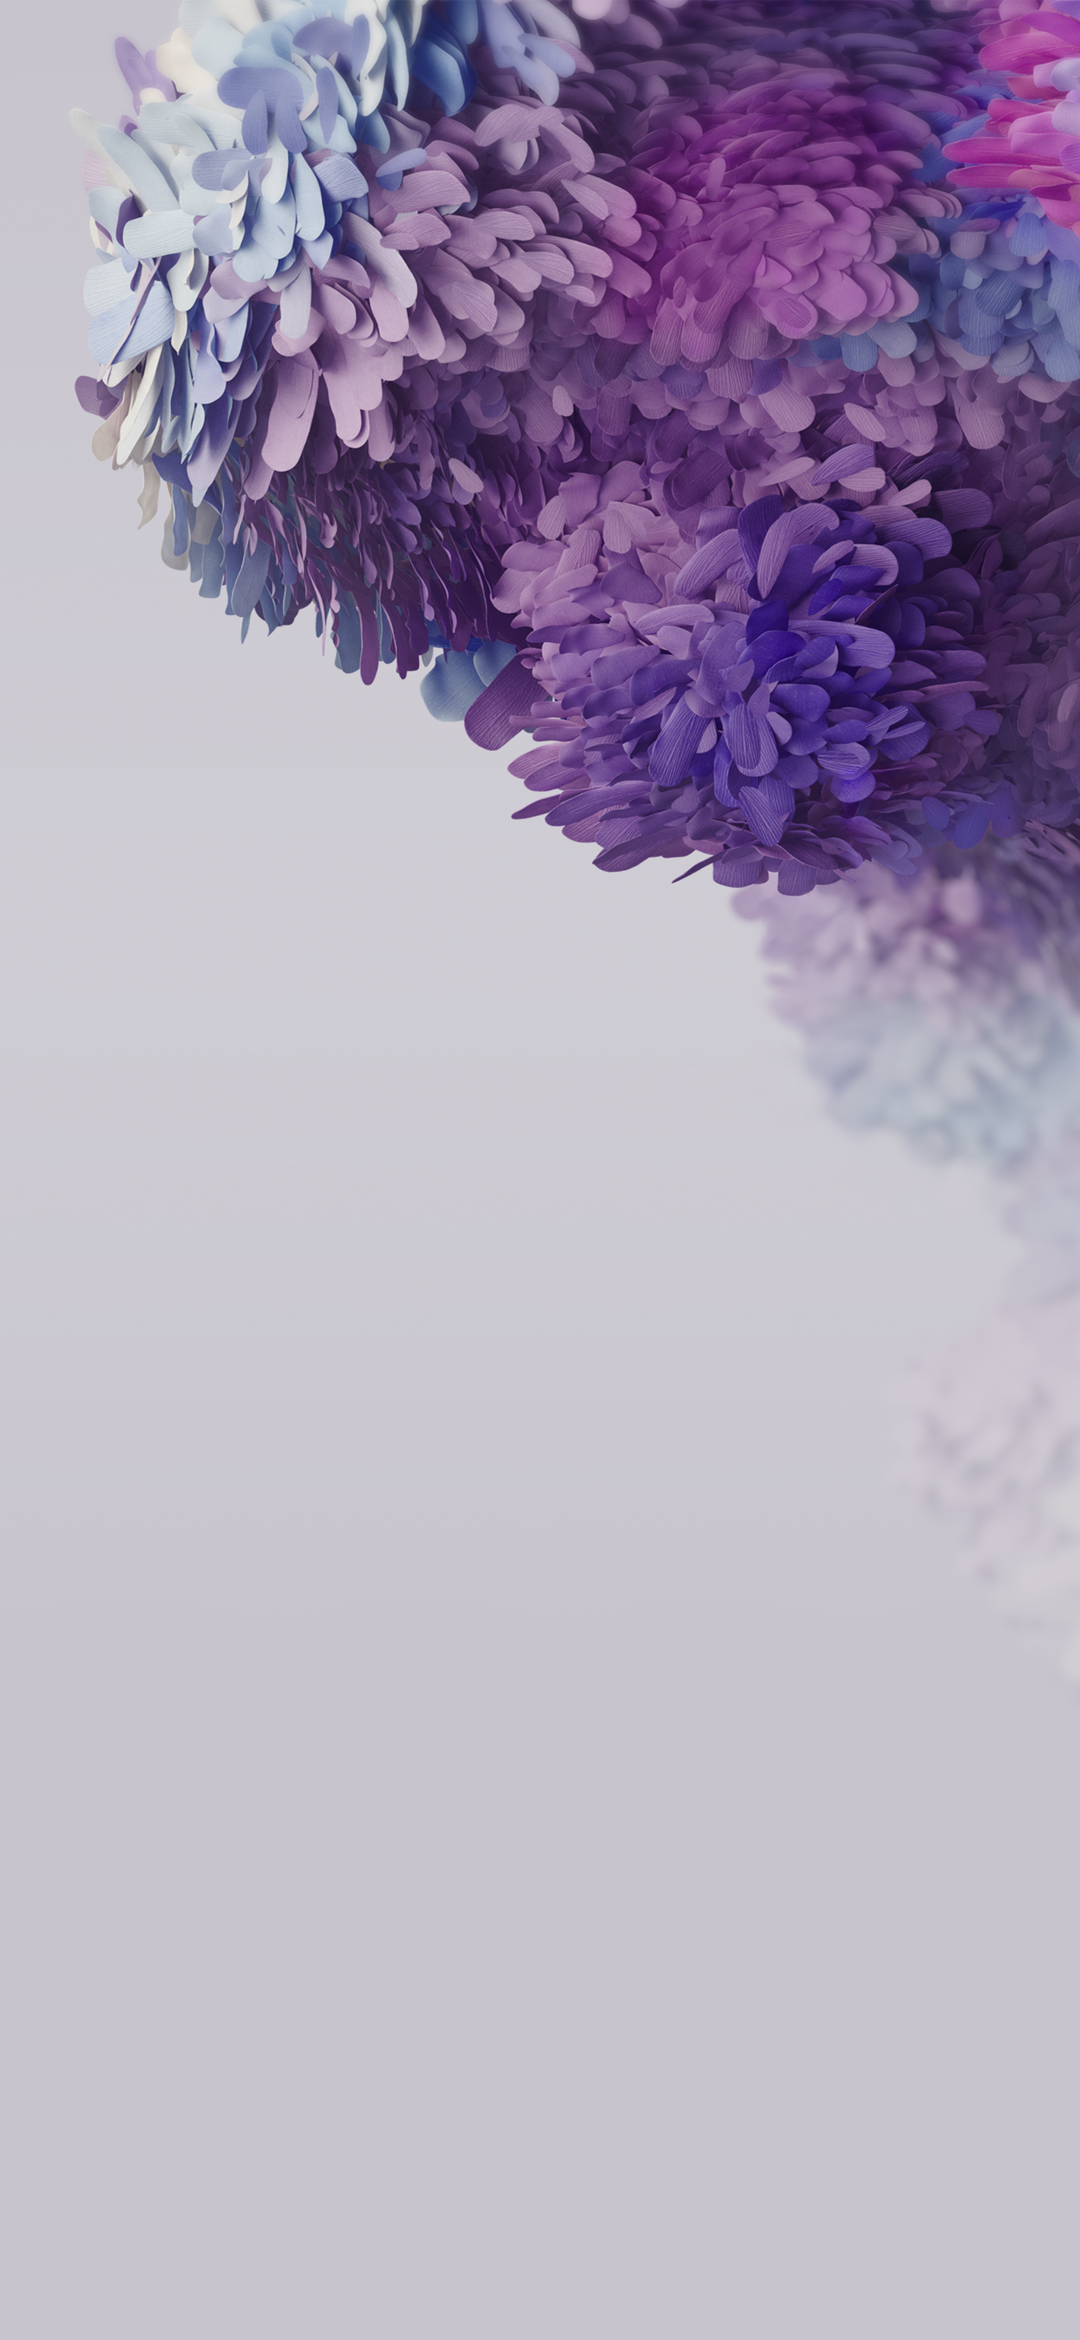 Samsung Galaxy S20 Wallpaper (YTECHB Exclusive) in 2020